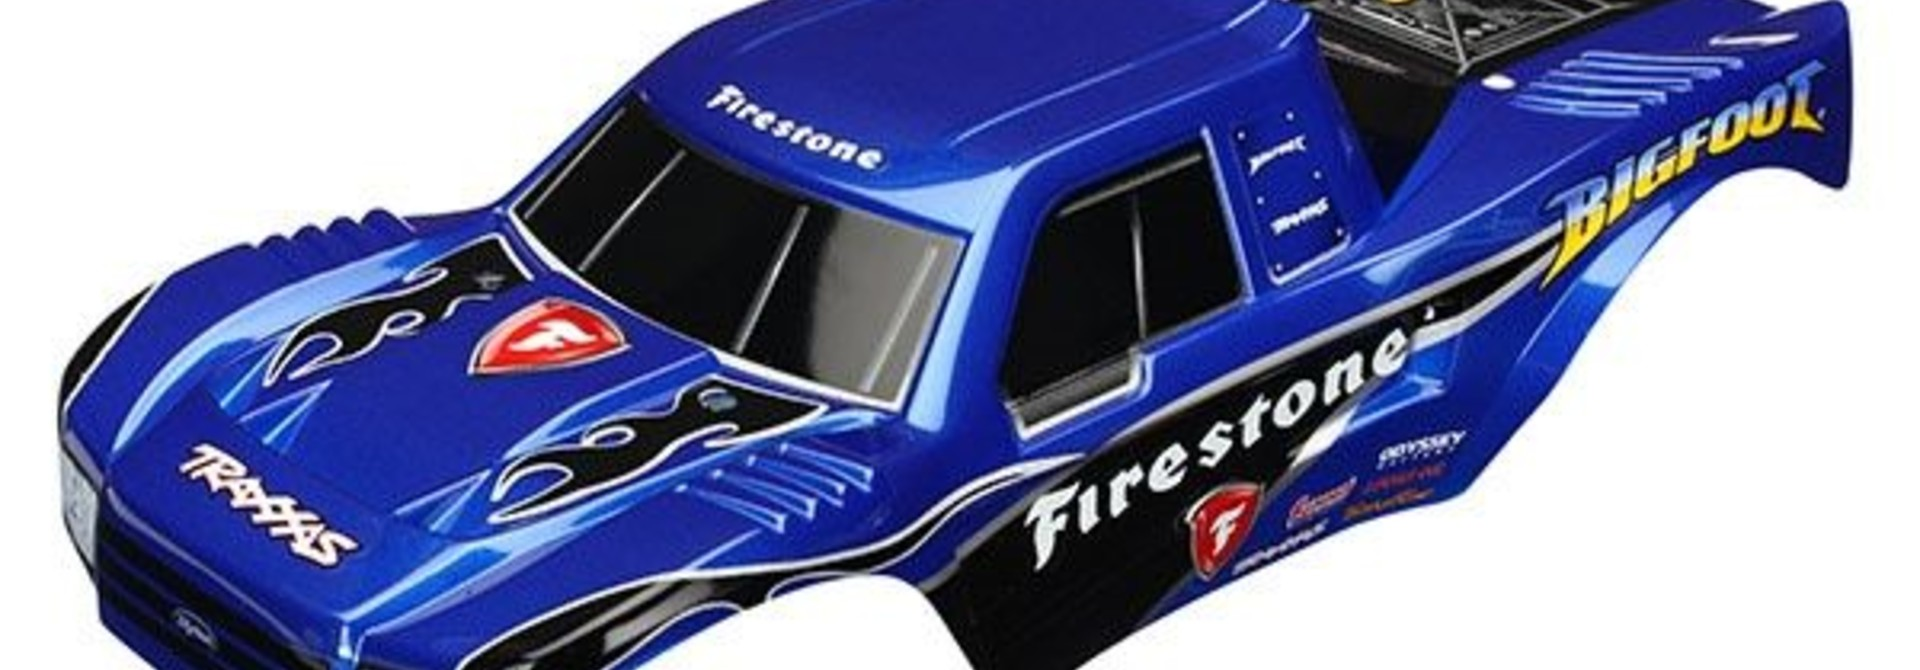 Body, Bigfoot Firestone, Offi cially Licensed replica painte, TRX3658